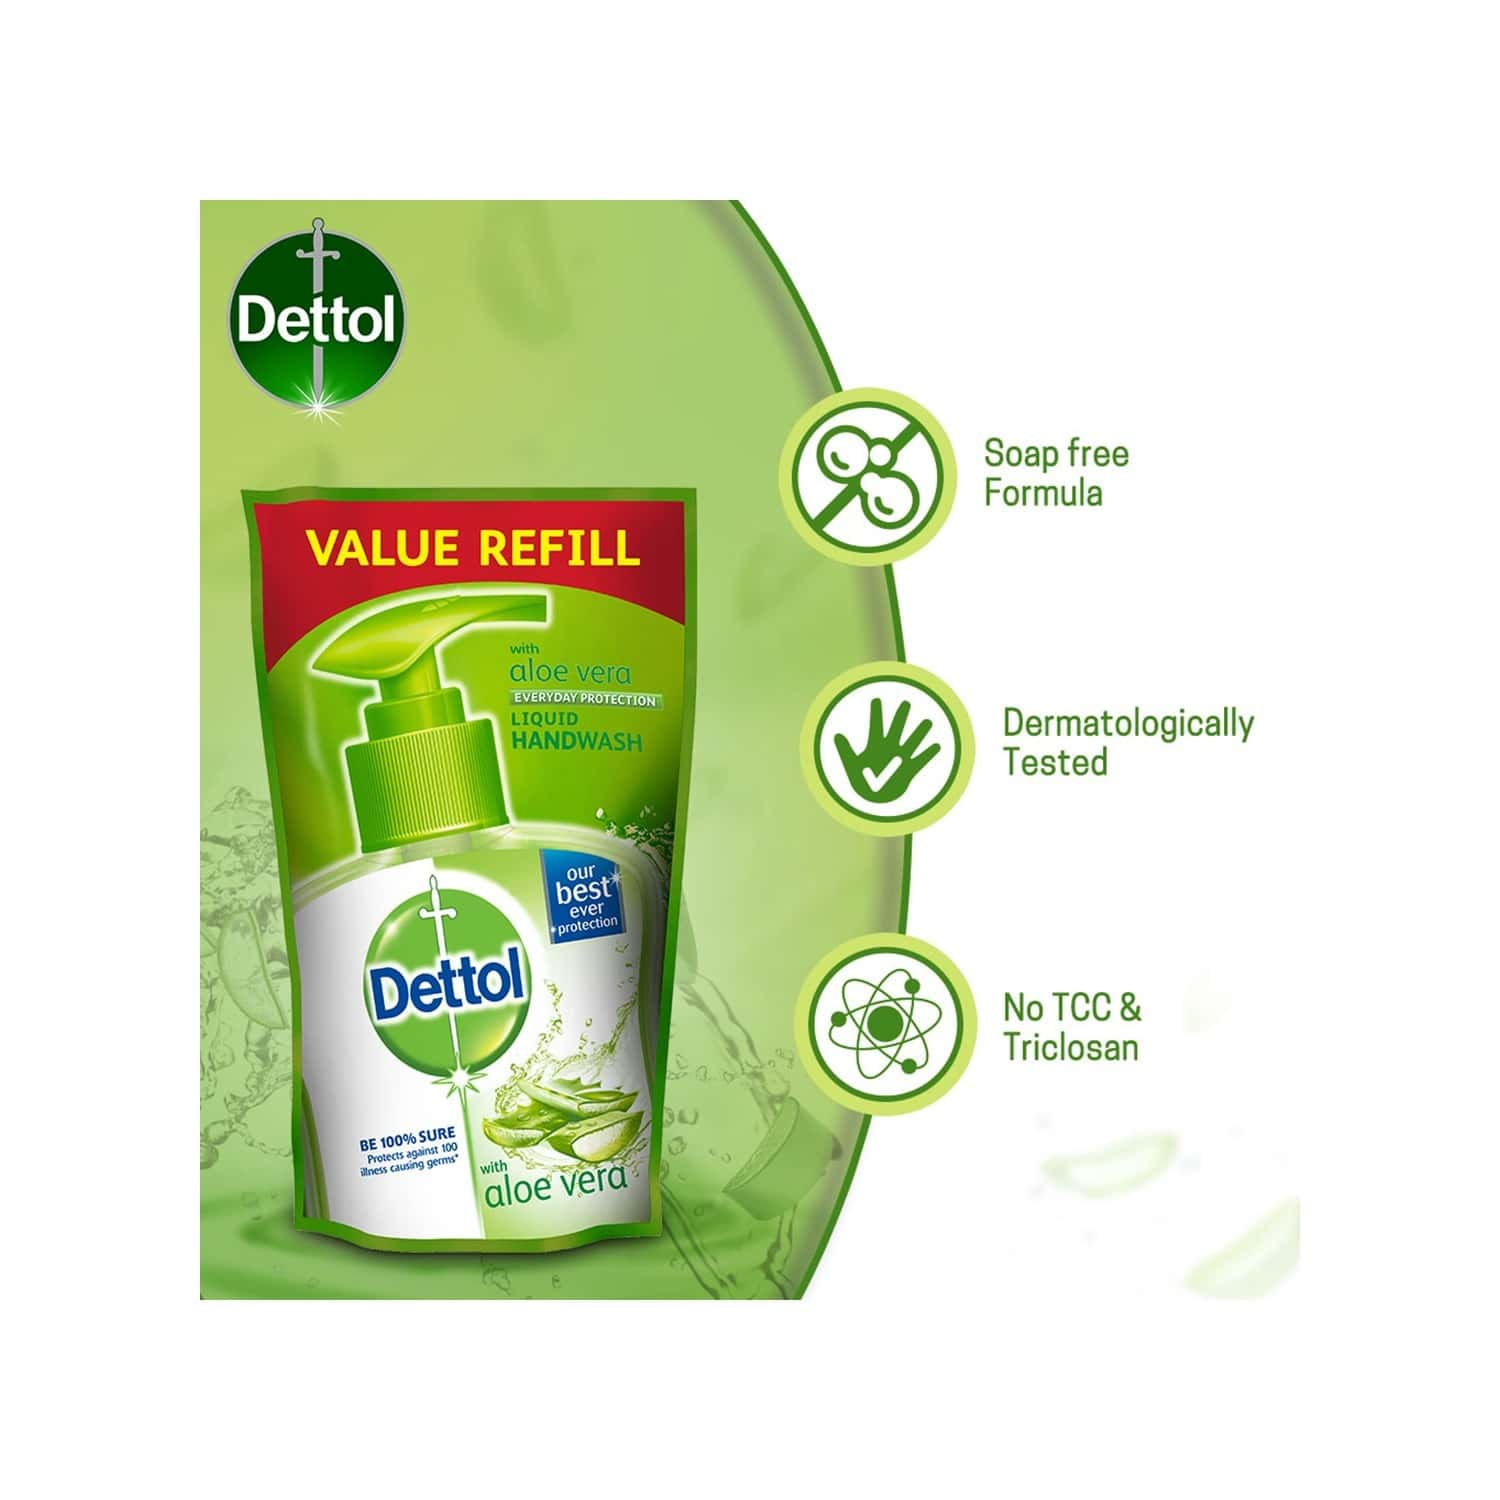 Dettol Germ Protection Aloe Vera (pack Of 3) Handwash Refill Of 175 Ml